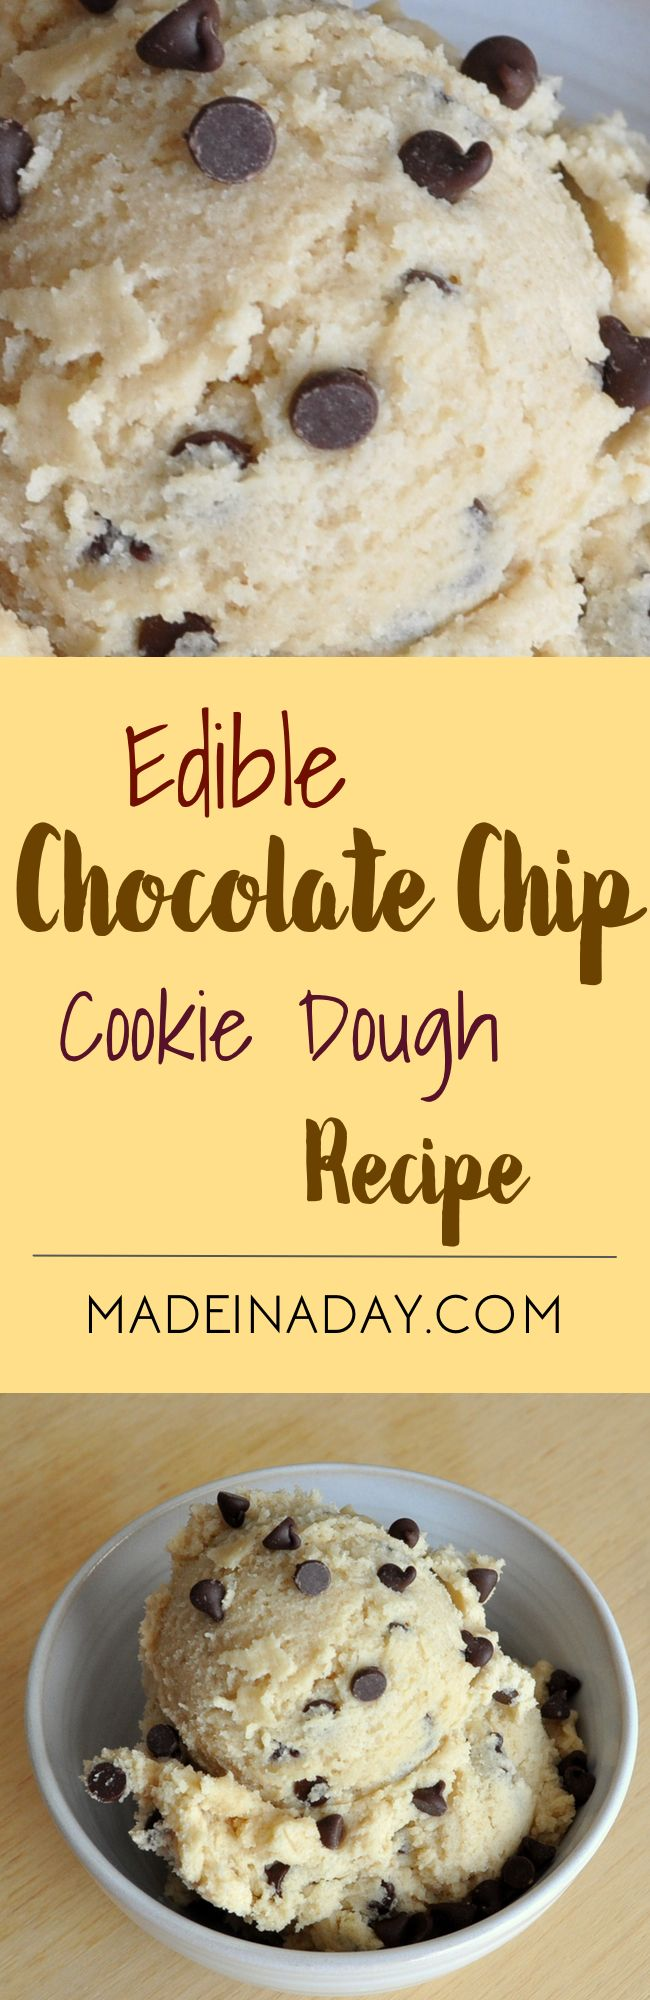 Edible Egg-less Cookie Dough Recipe, make a safer version of grocery store cookie dough that you can actually eat!